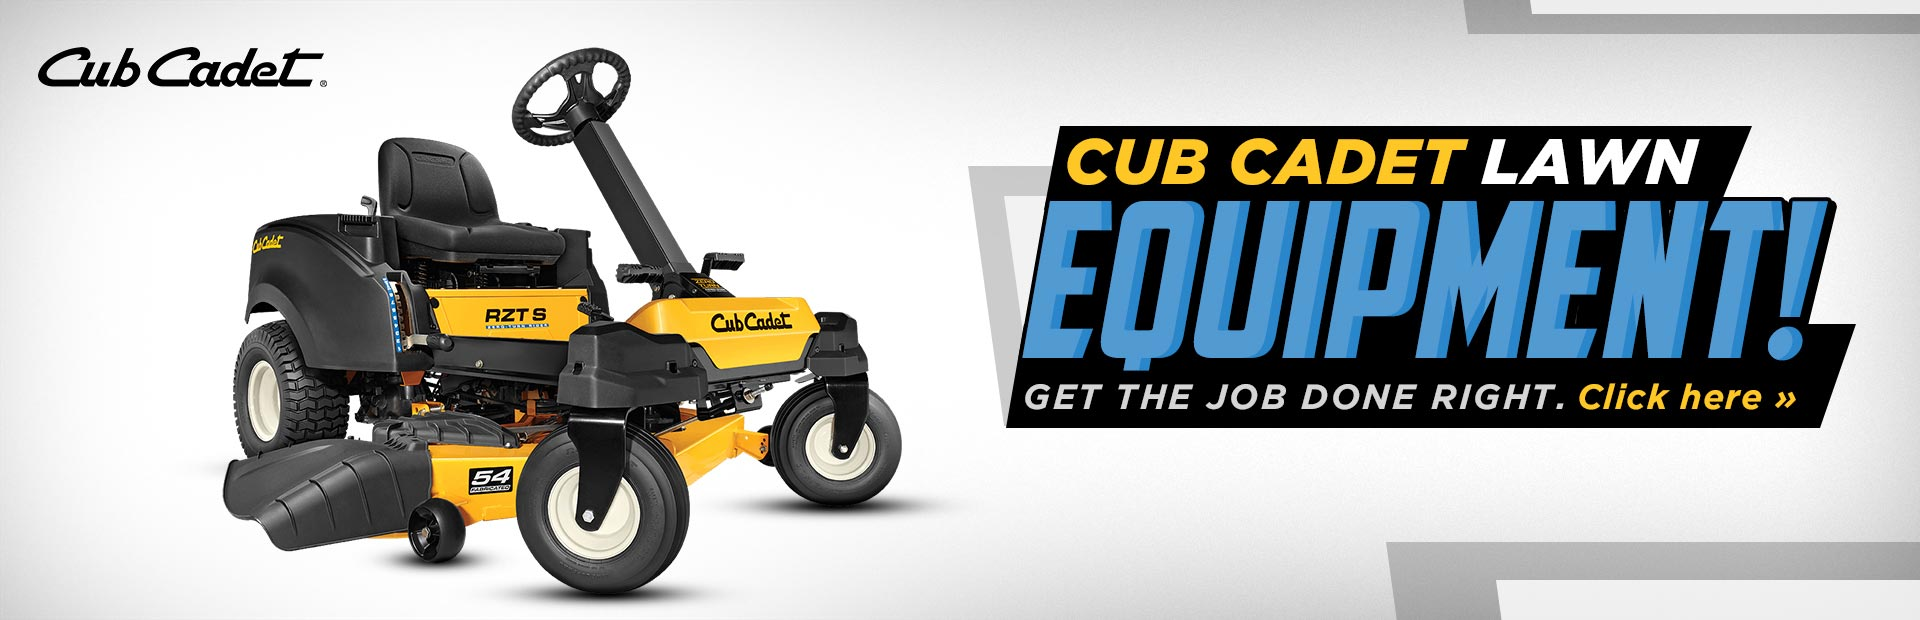 Cub Cadet Lawn Equipment: Click here to view the showcase!